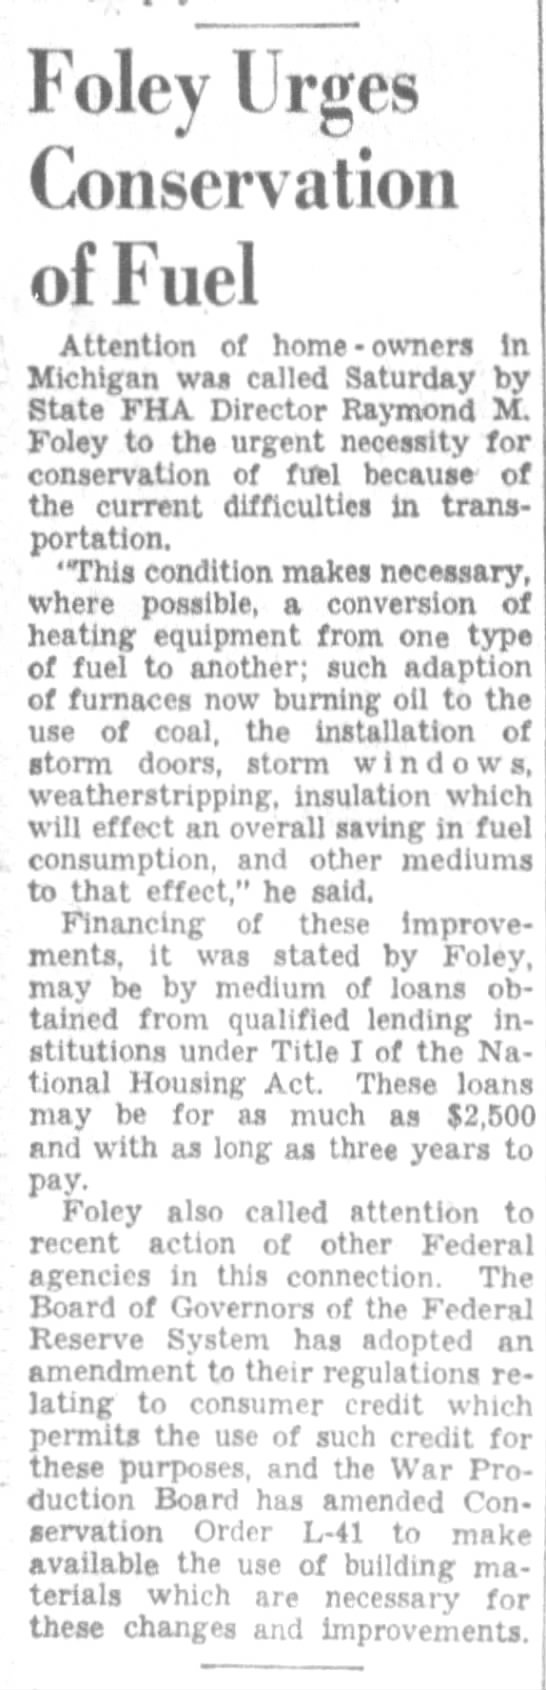 Foley urges conservation of fuel, DFP 10-25-1942 p12 -